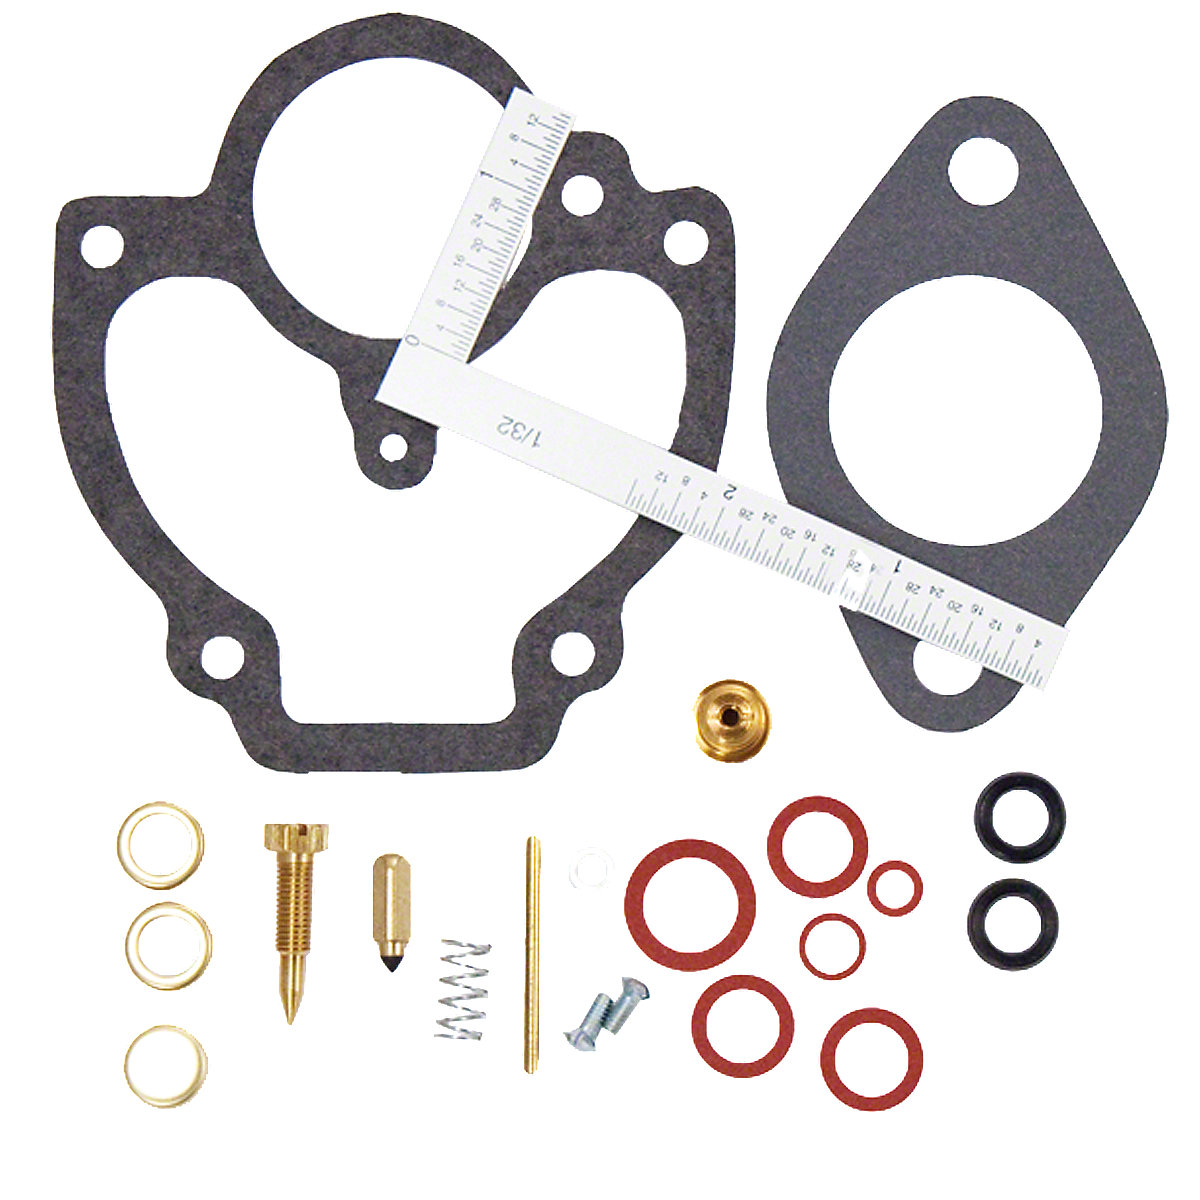 Zenith Economy Carburetor Kit For Massey Harris: 101 Jr, 102 Jr, 44, 44-6, 44 Special, 55, 555, Challenger, Pacemaker.